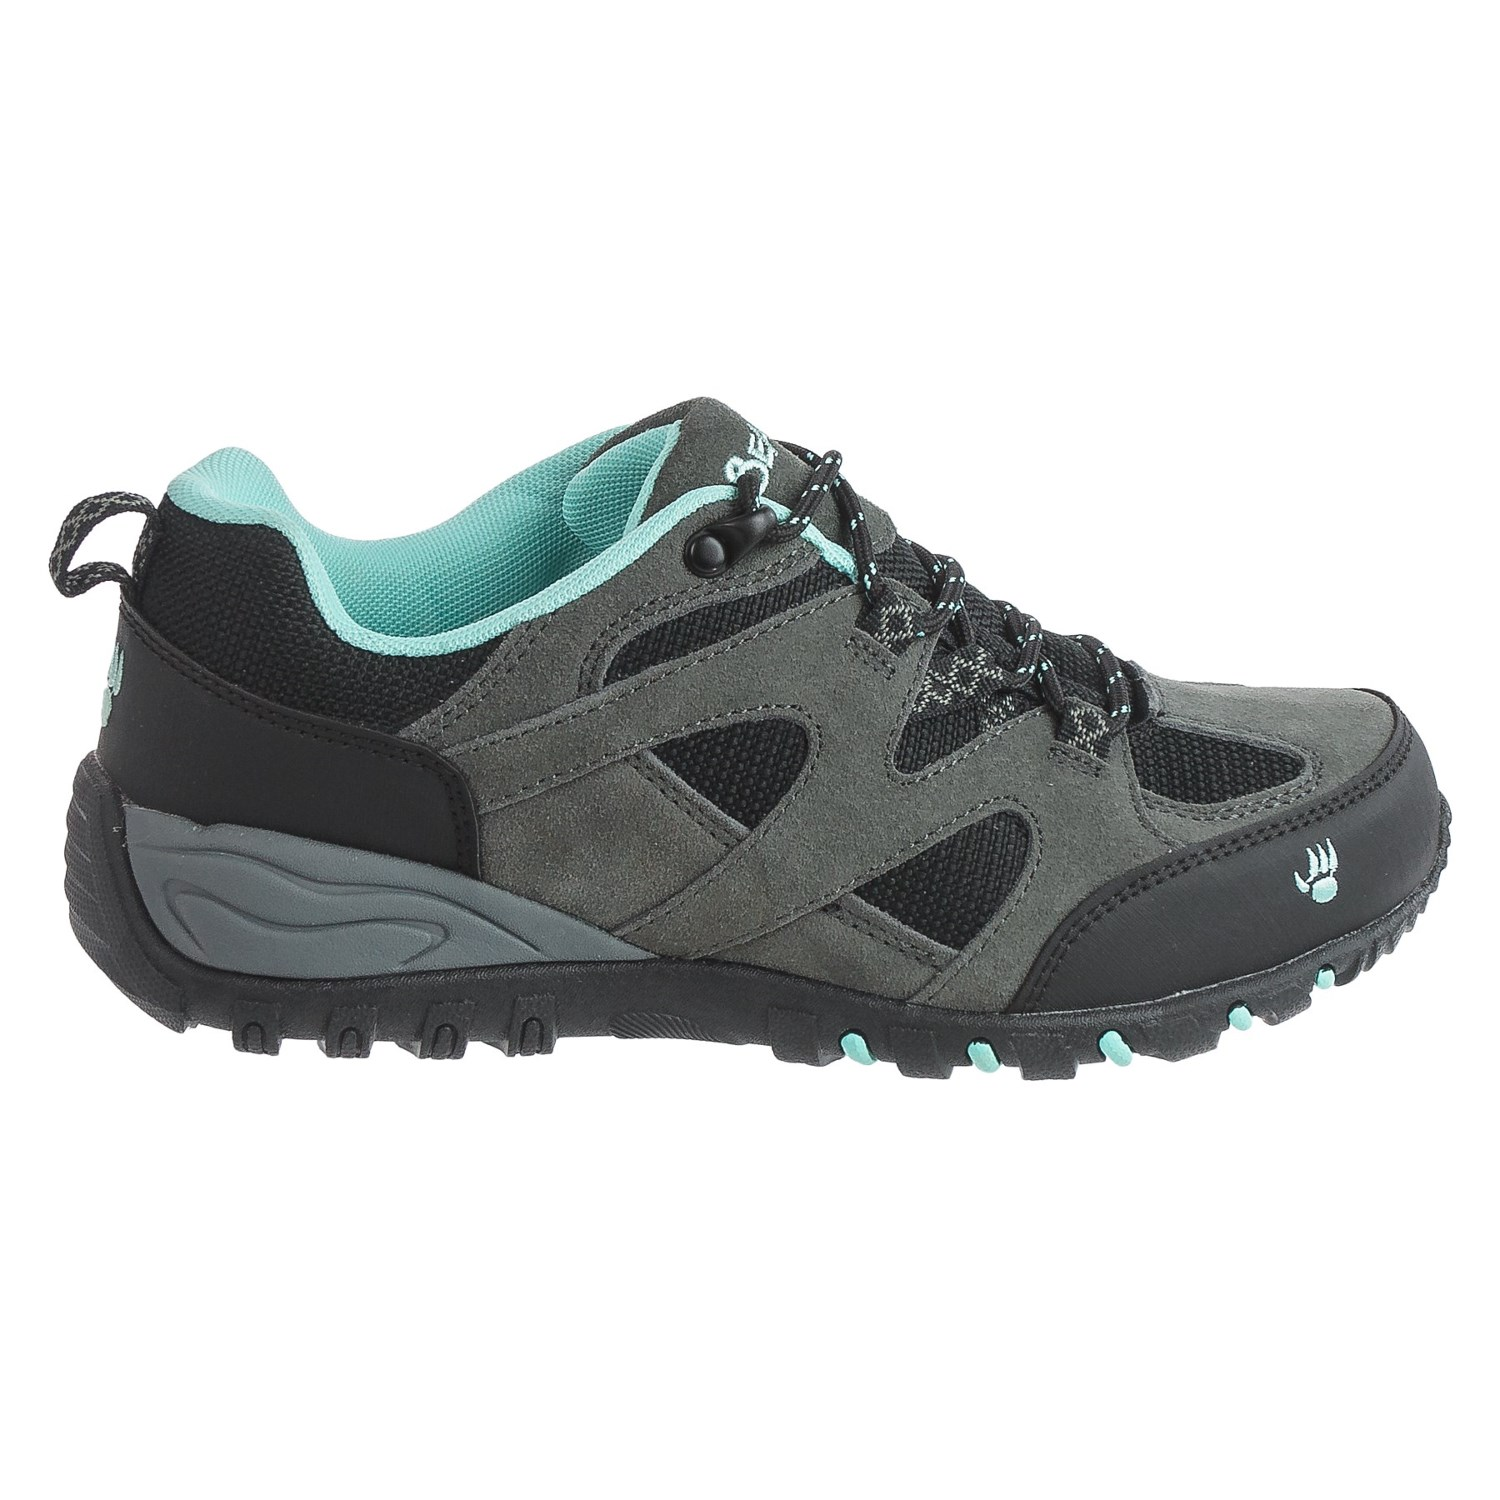 Hiking Shoes For Men Near Me